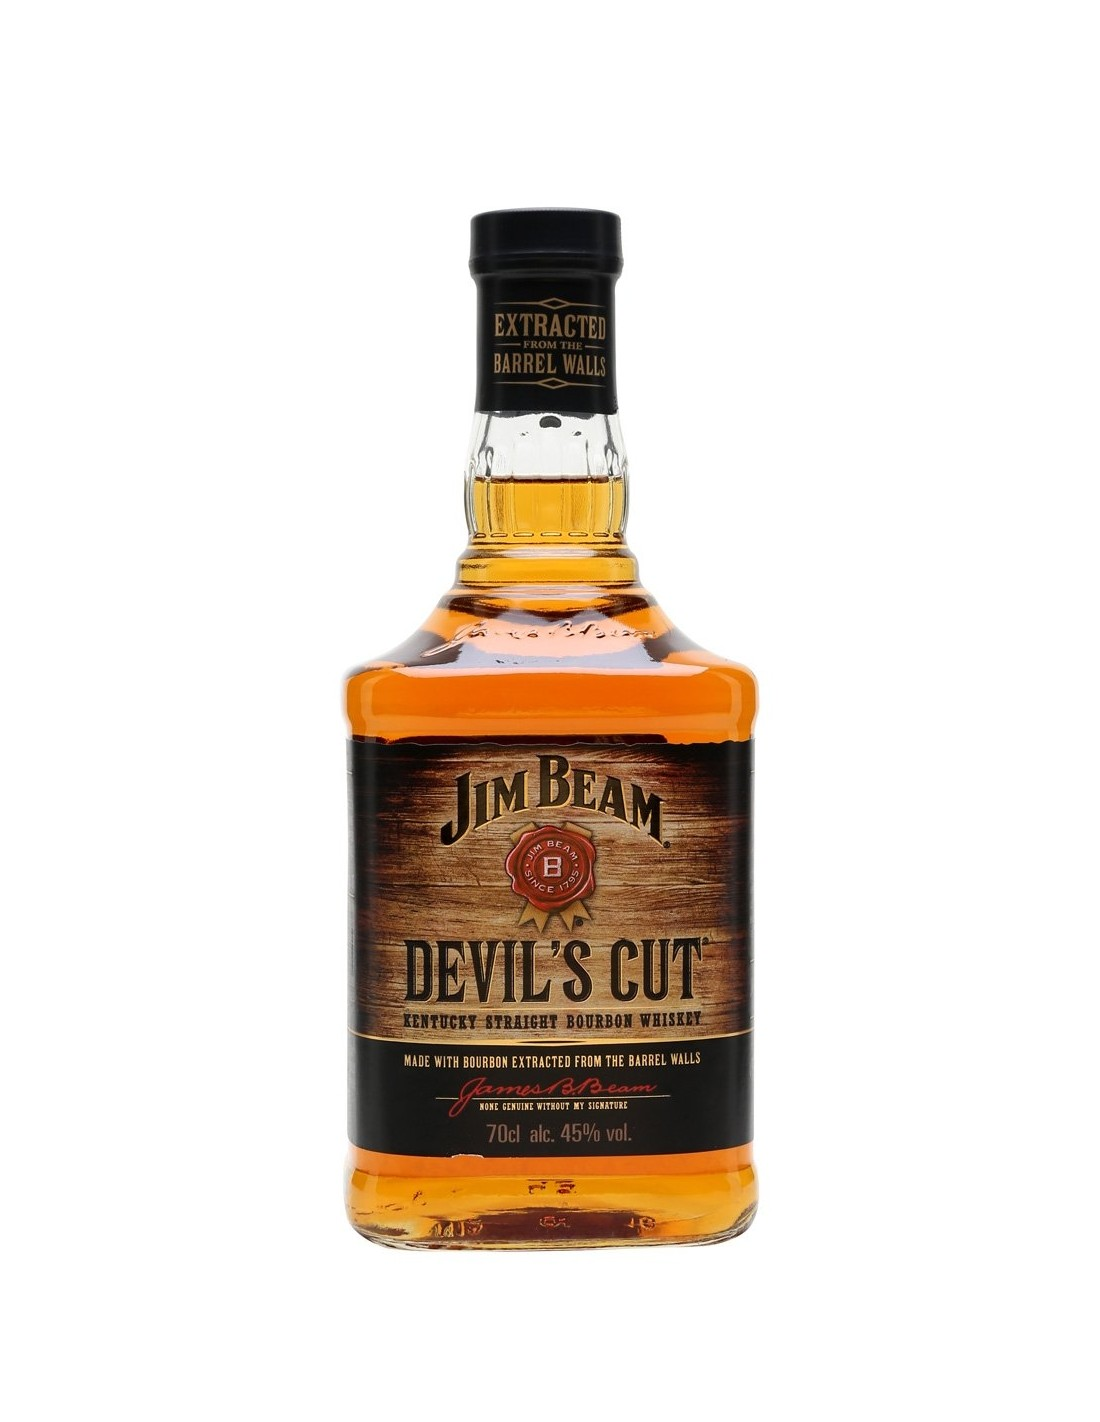 Whisky Bourbon Jim Beam Devil's Cut, 45% alc., 0.7L, America